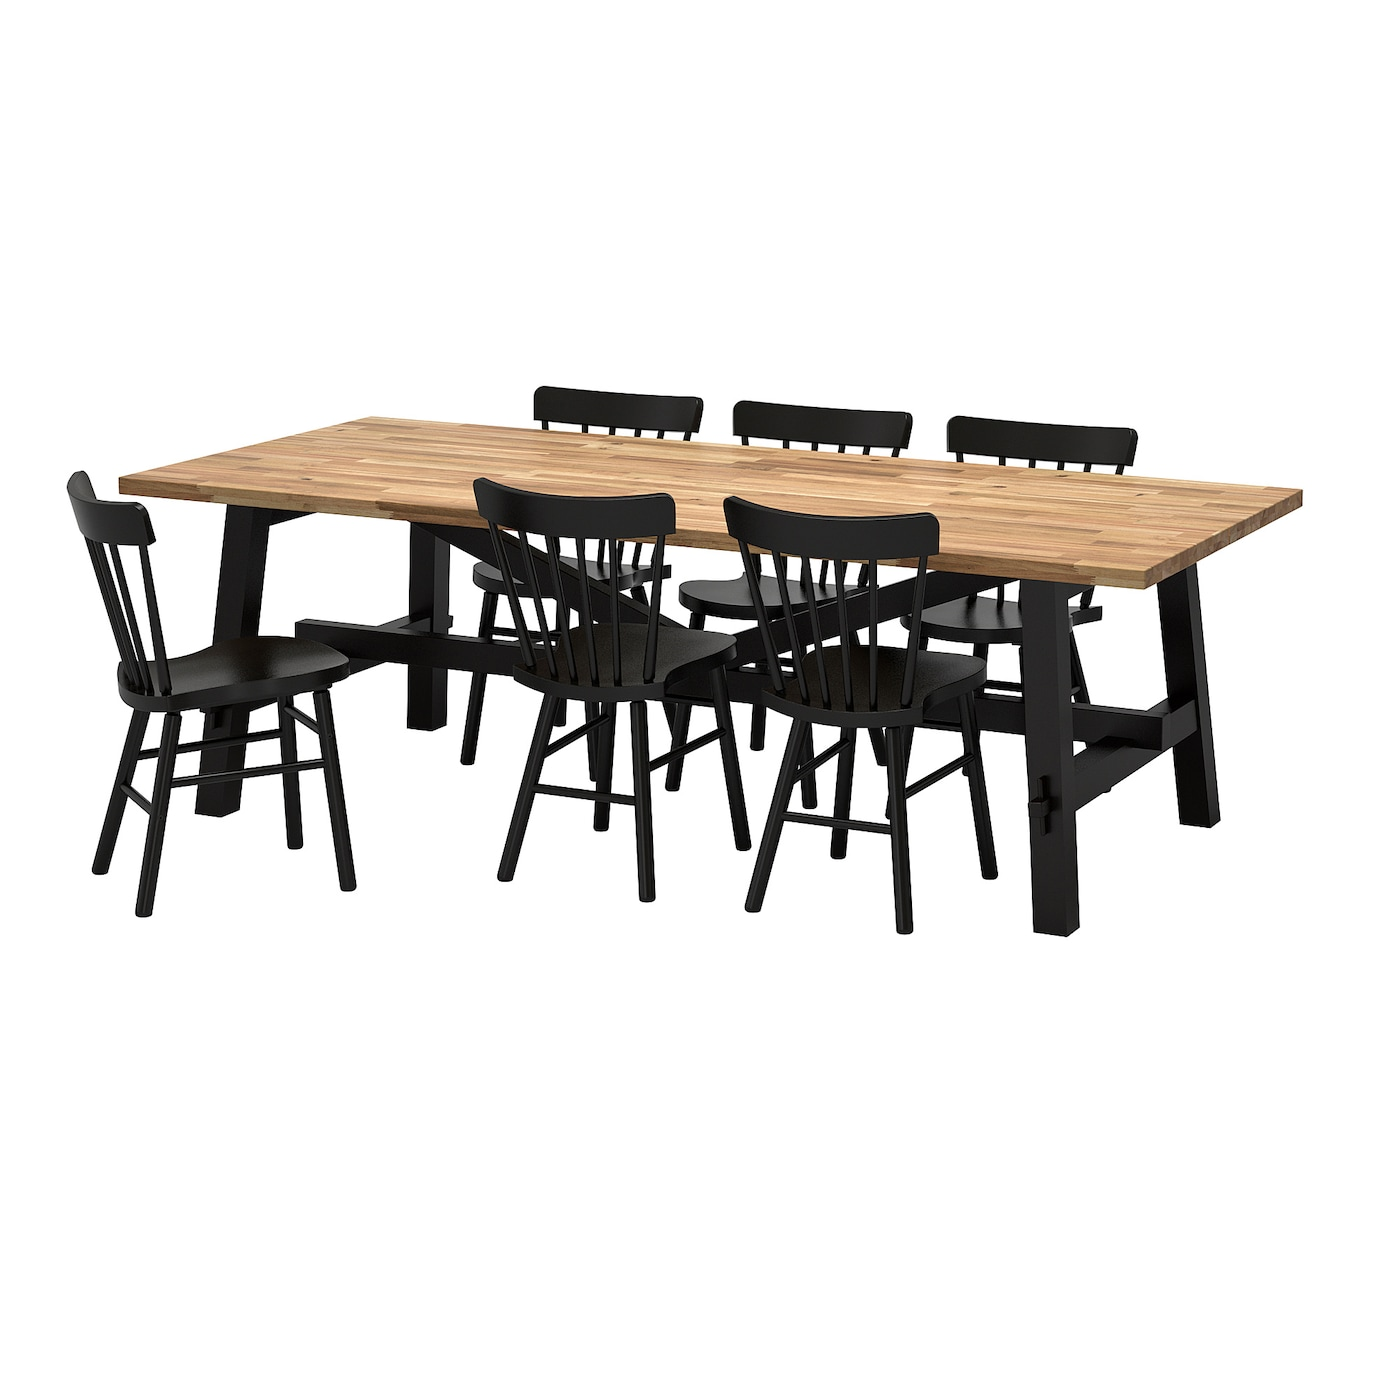 norraryd skogsta table et 6 chaises acacia noir 235x100 cm ikea. Black Bedroom Furniture Sets. Home Design Ideas